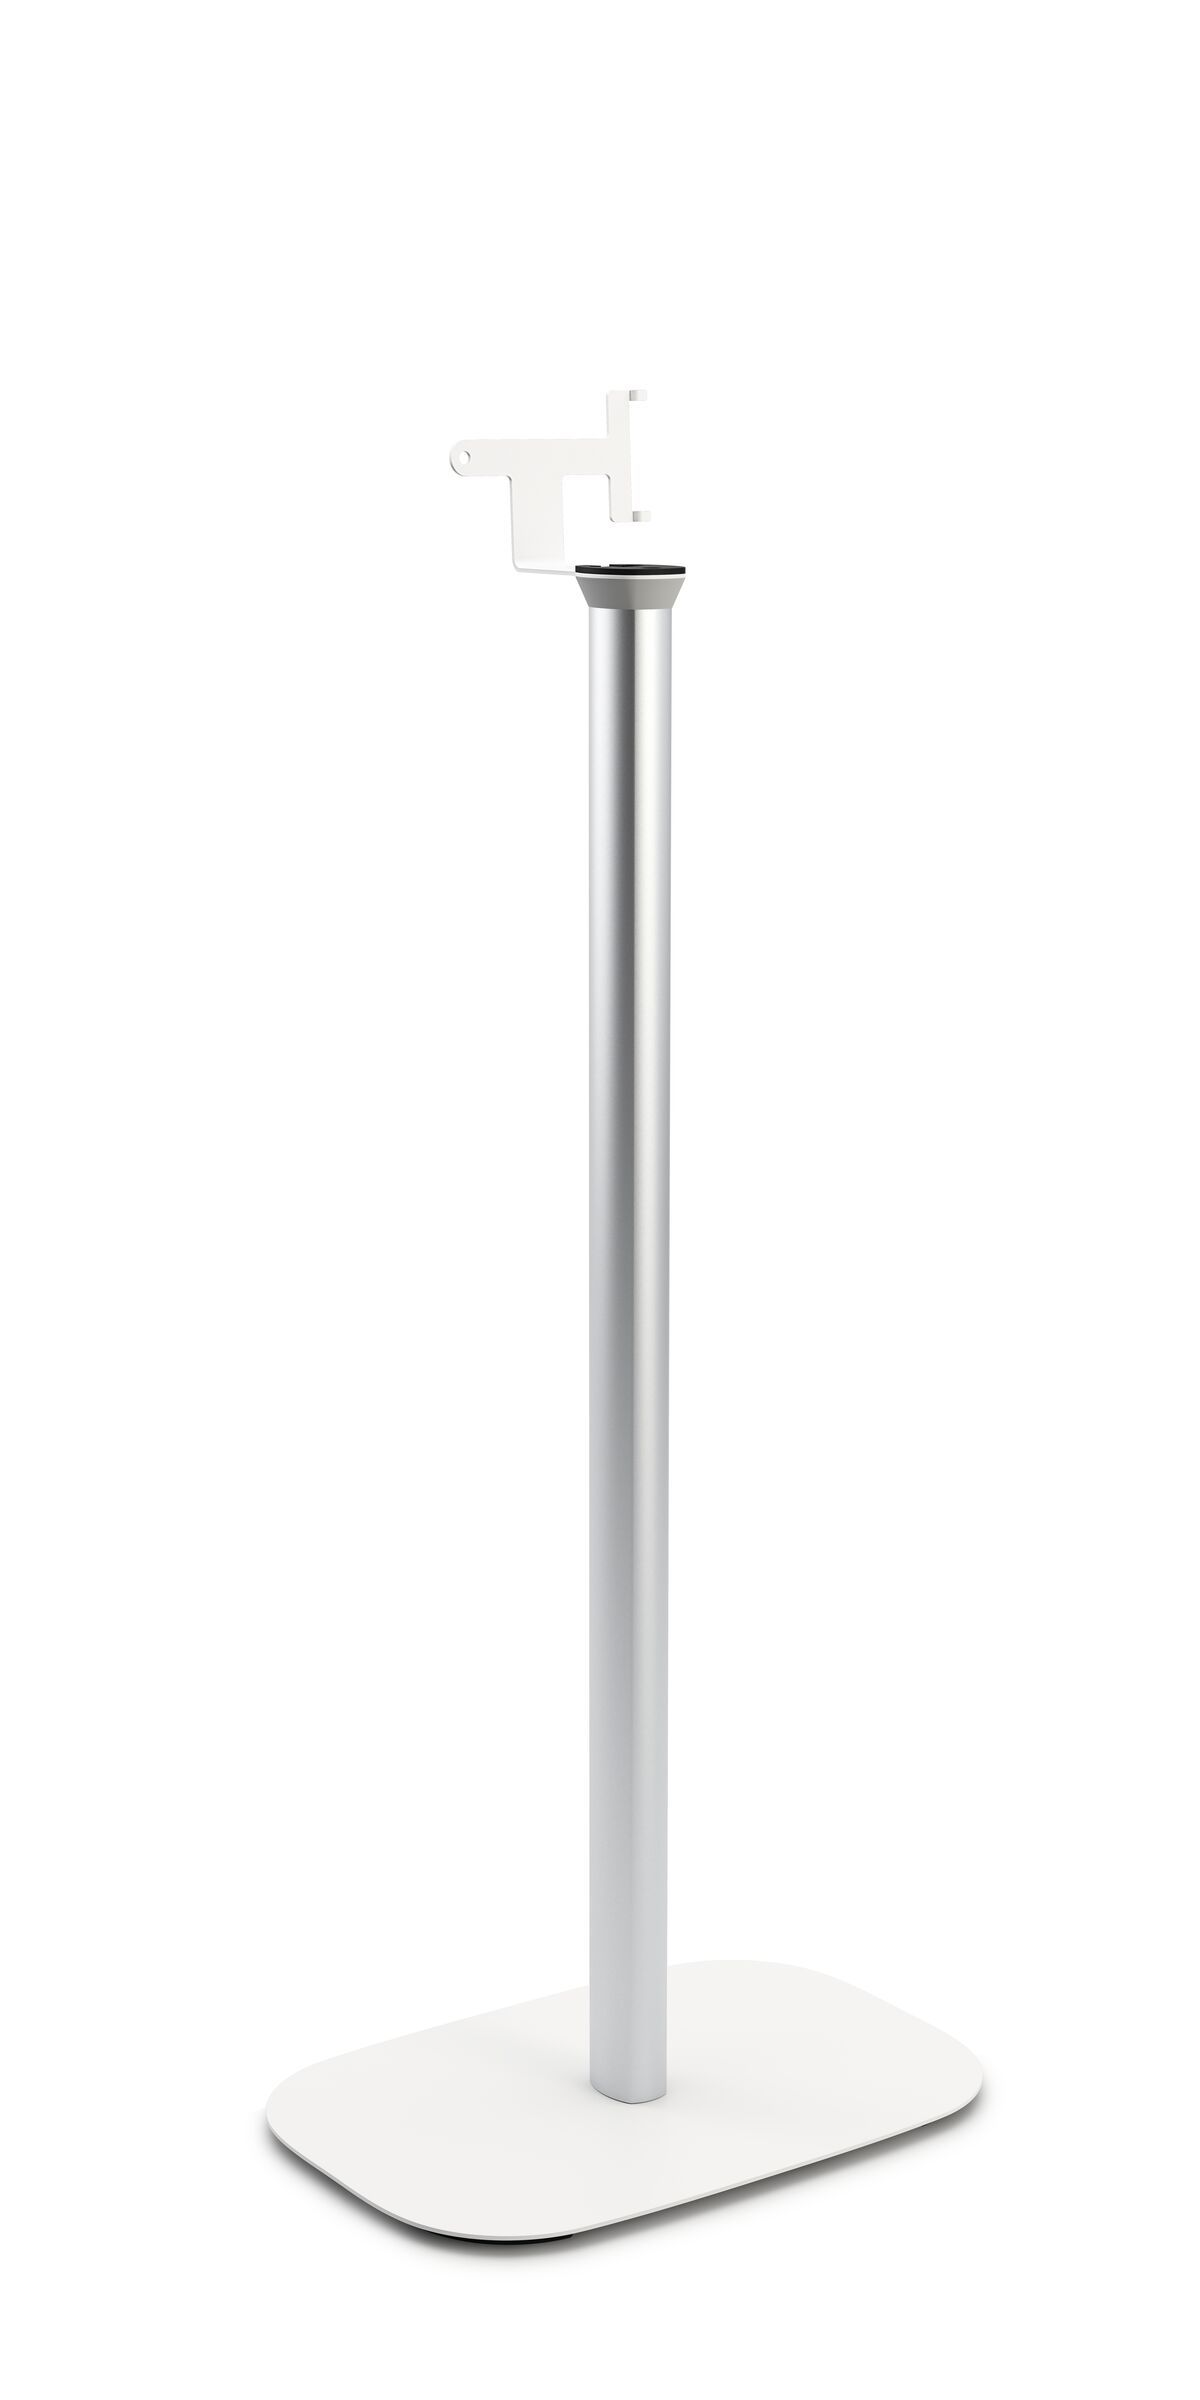 Vogel's SOUND 4303 Speaker Stand for SONOS PLAY:3 (white) - Product